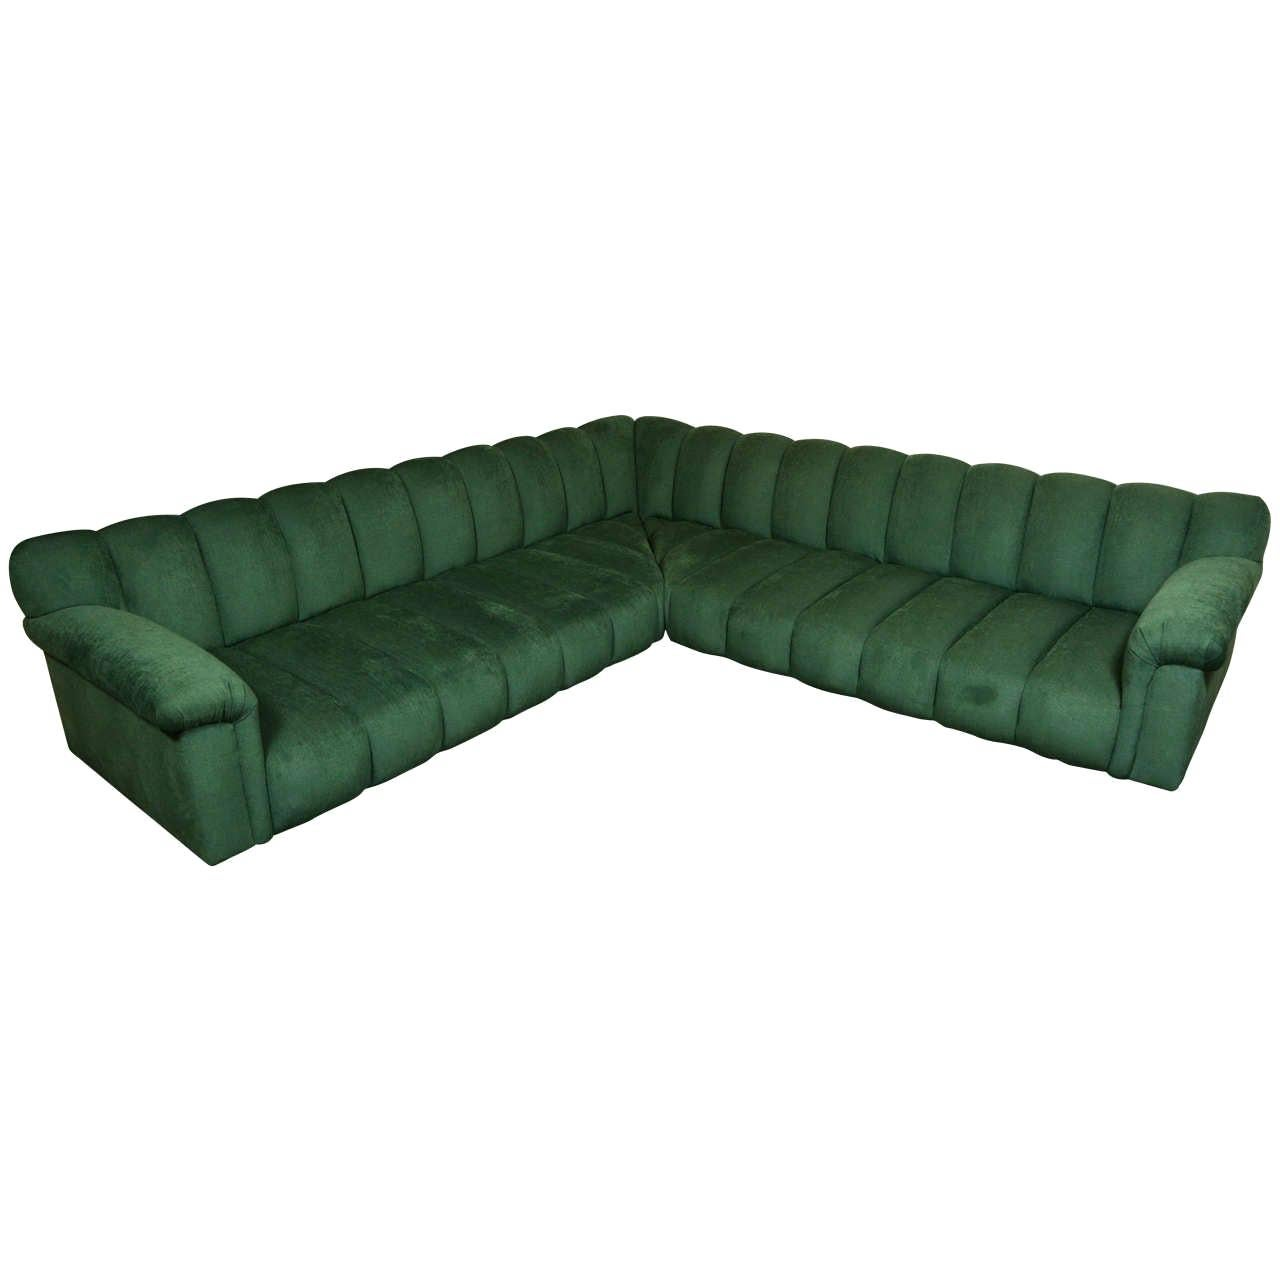 Two-Piece Sectional Sofa by Steve Chase